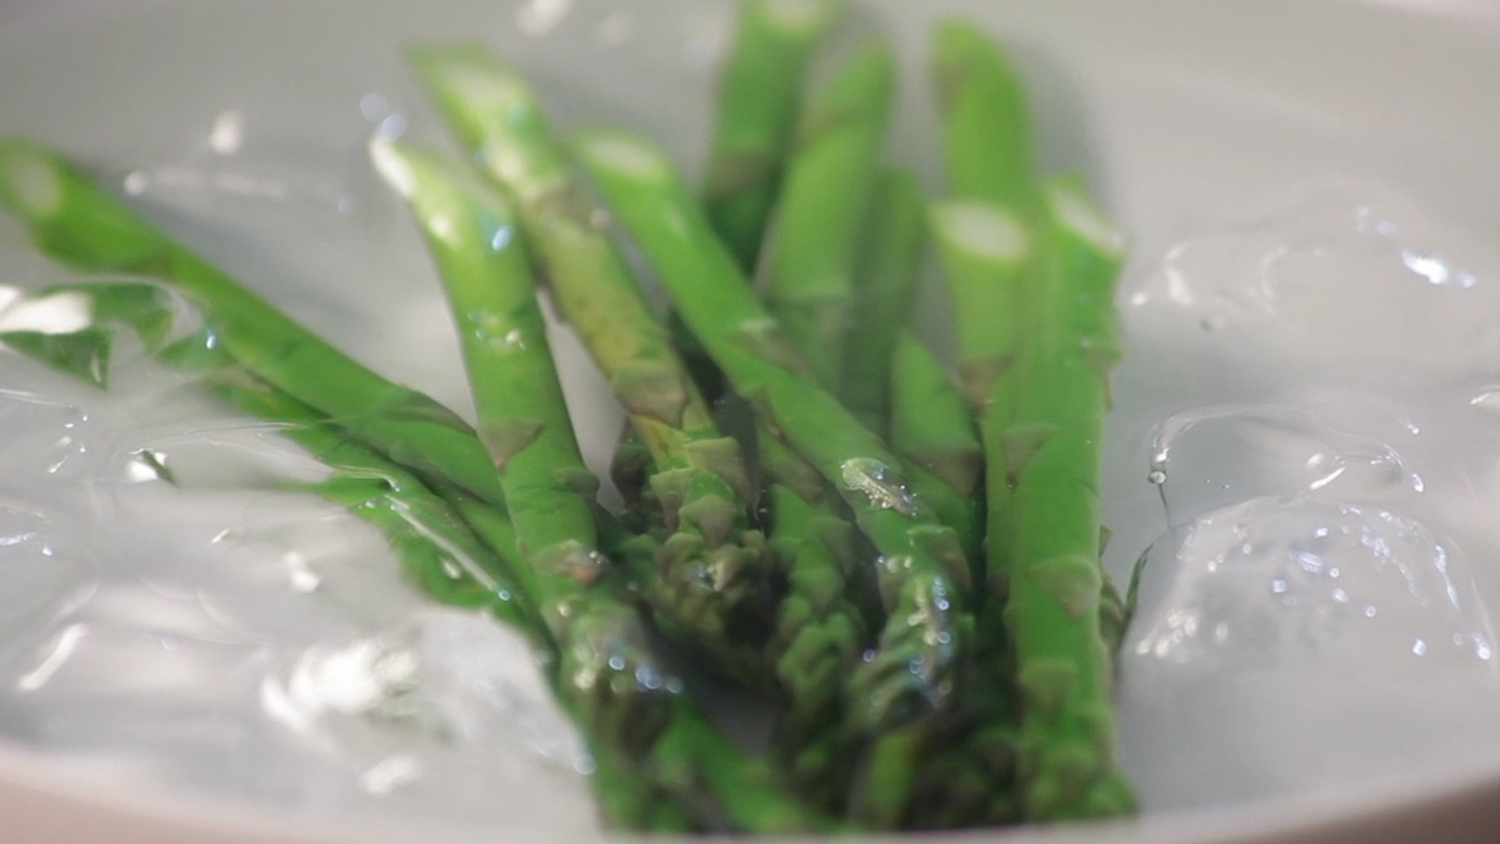 White How To Blanch Asparagus British Chefs How Long Does Asparagus Last Urine How Long Does Asparagus Last Before Cooking houzz-03 How Long Does Asparagus Last